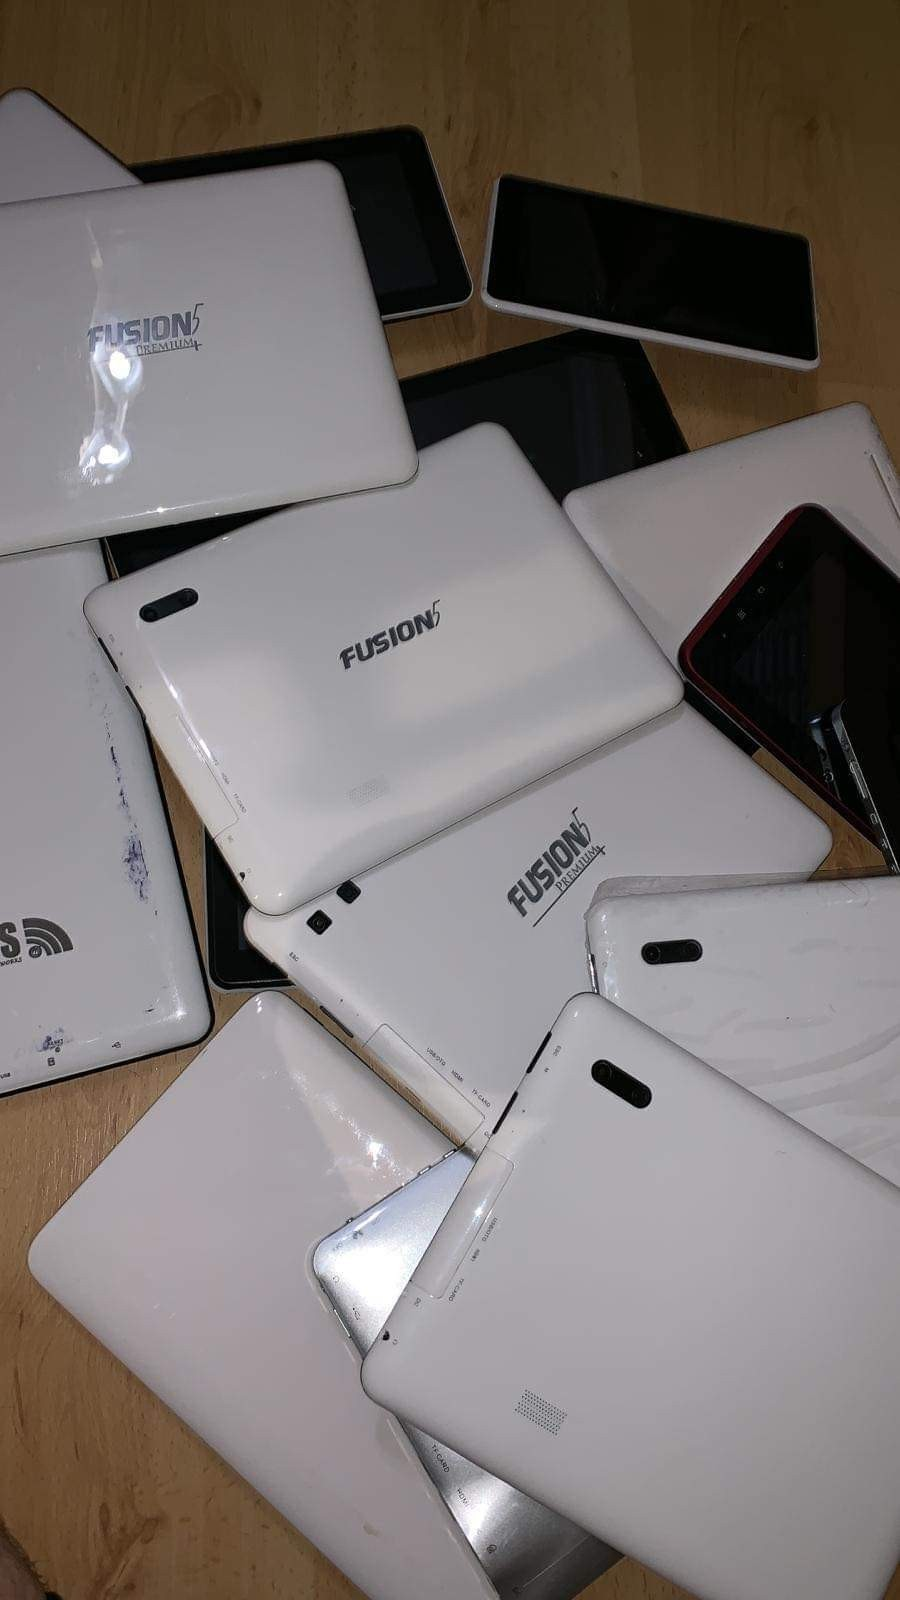 Fusion5 Tablets, 7